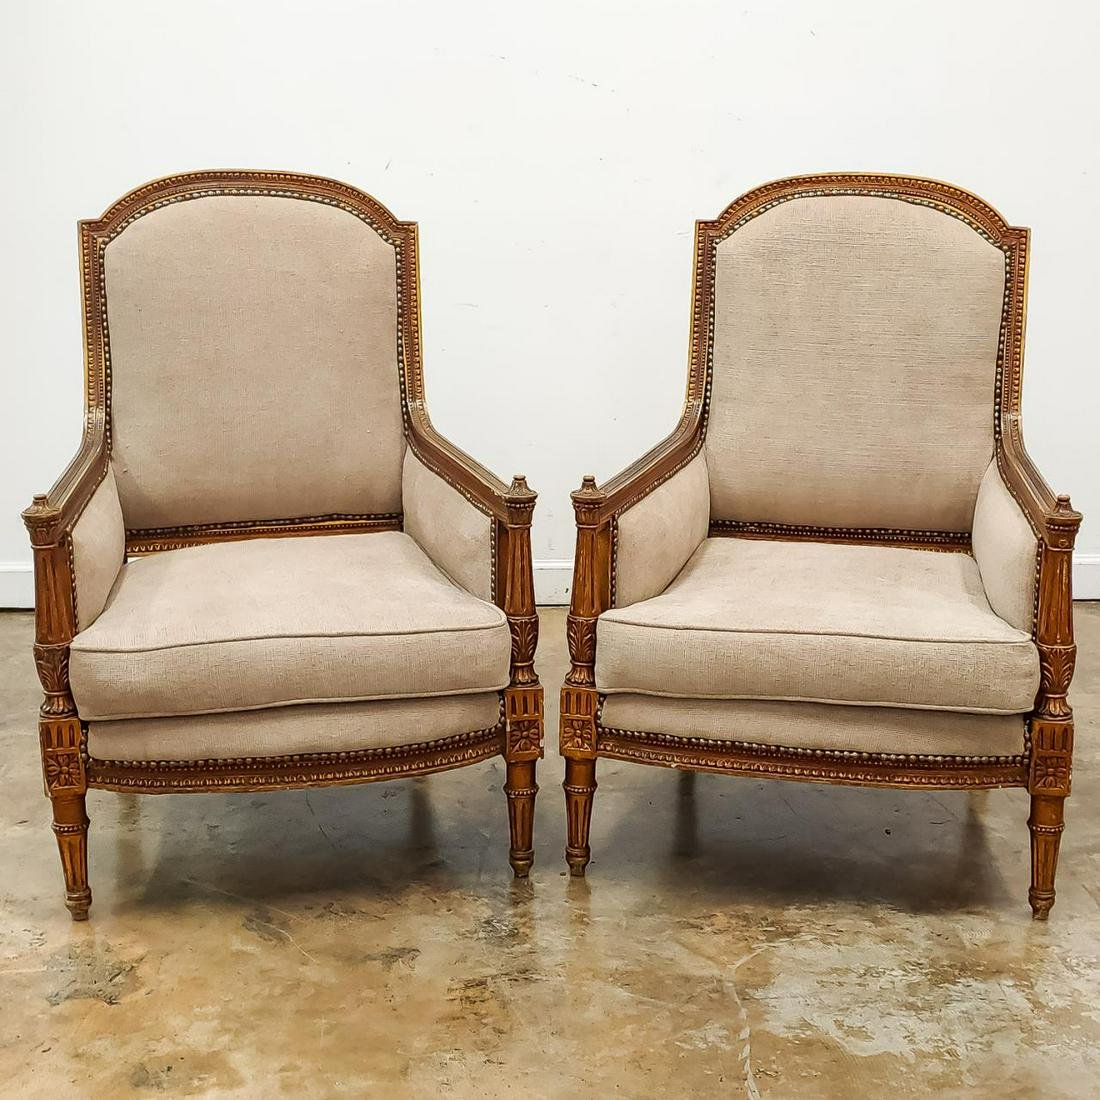 PAIR, FRENCH LOUIS XV STYLE GILT BERGERE CHAIRS